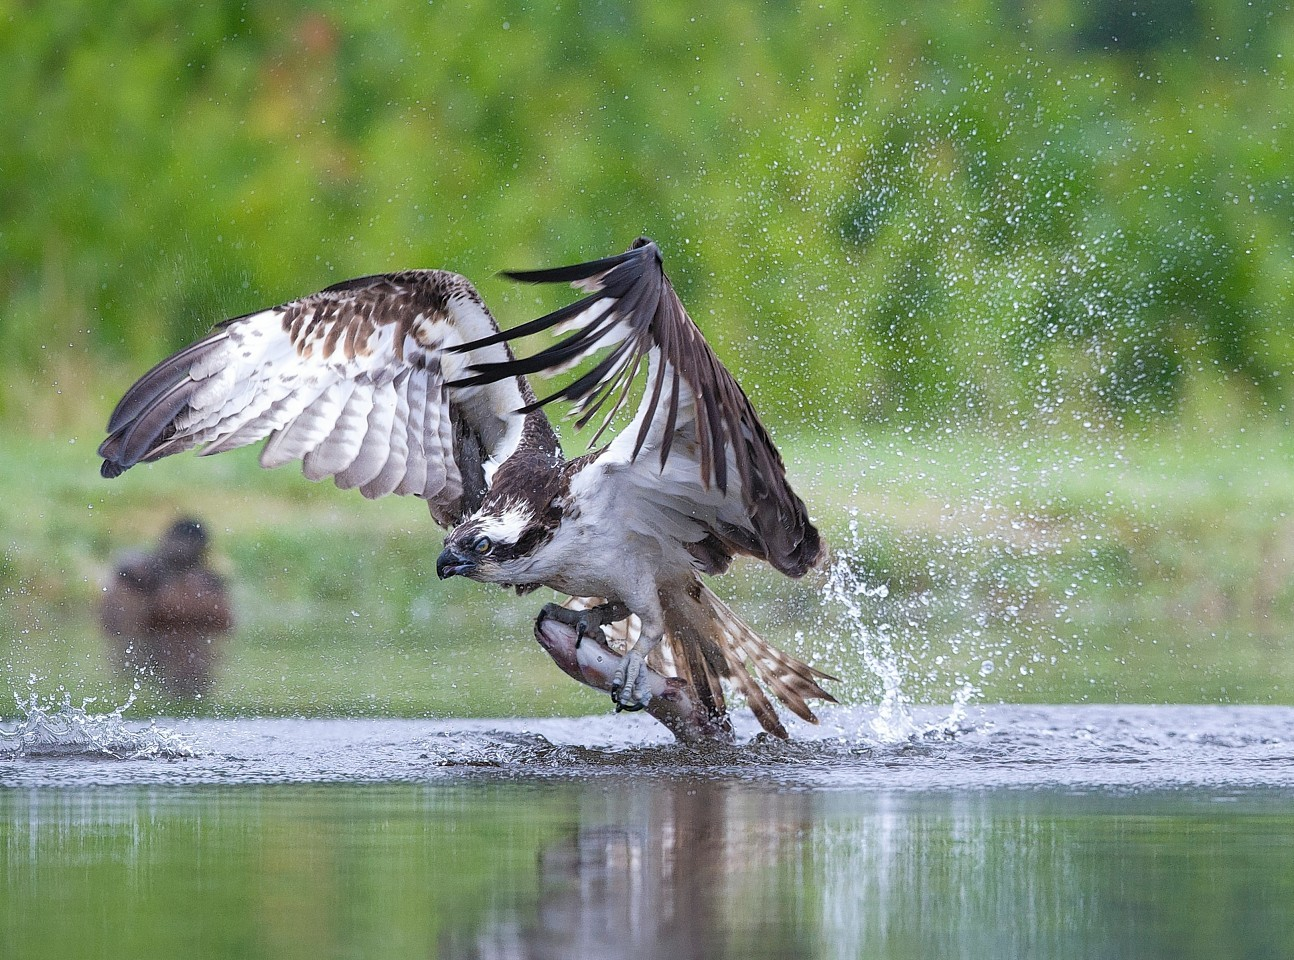 The Osprey lifts a fish from the water